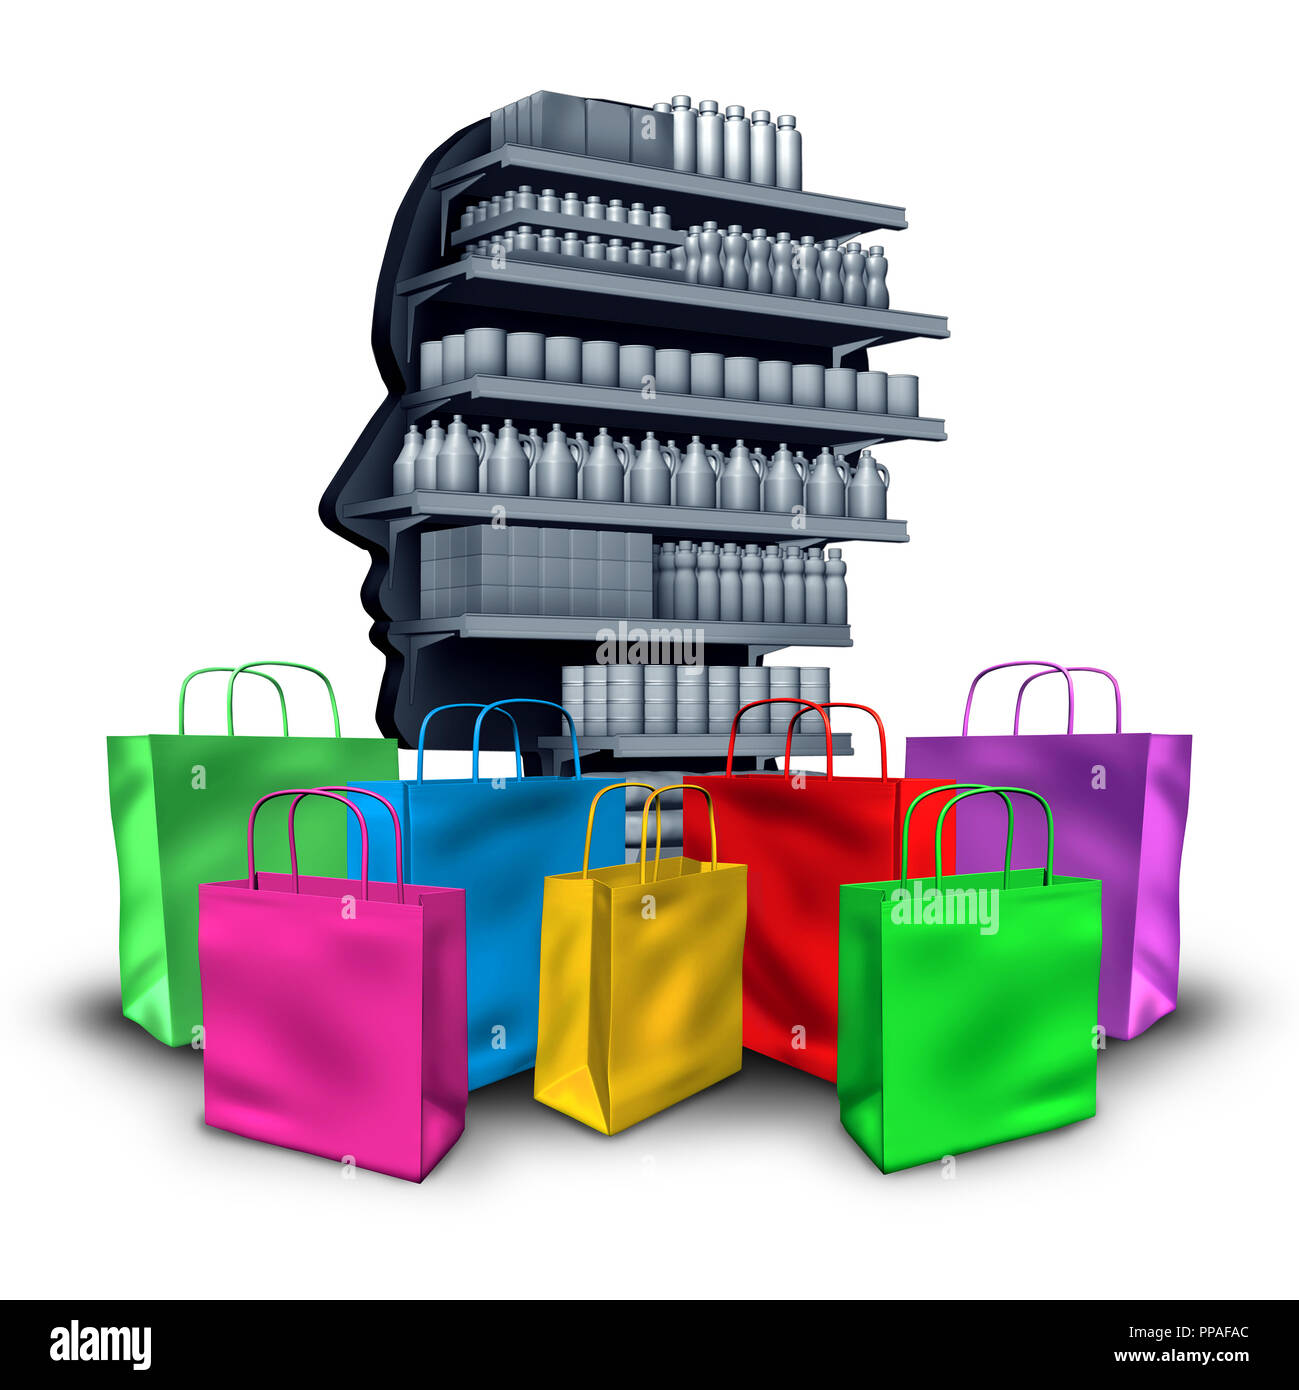 Spending concept consumerism and material possessions concept as the desire to buy and possess objects as a shopaholic idea of greed. - Stock Image